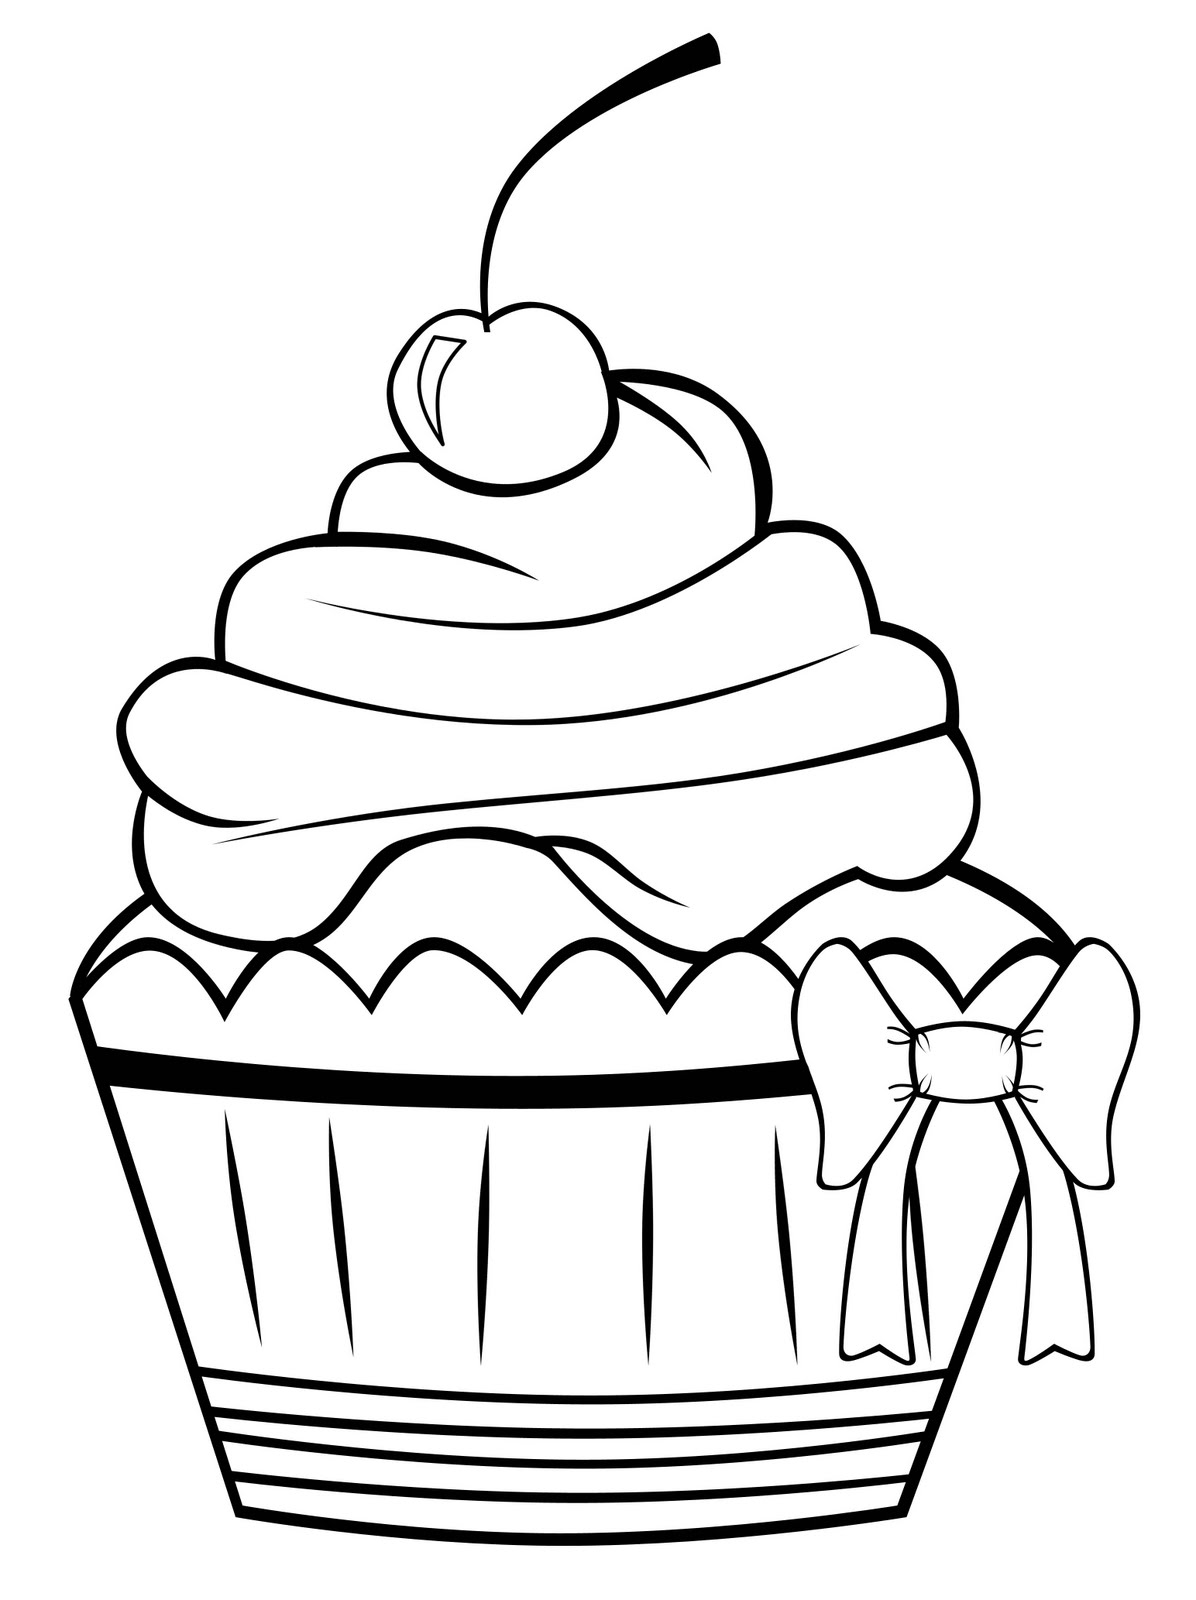 cute cupcake coloring pages - Cupcakes Coloring Pages